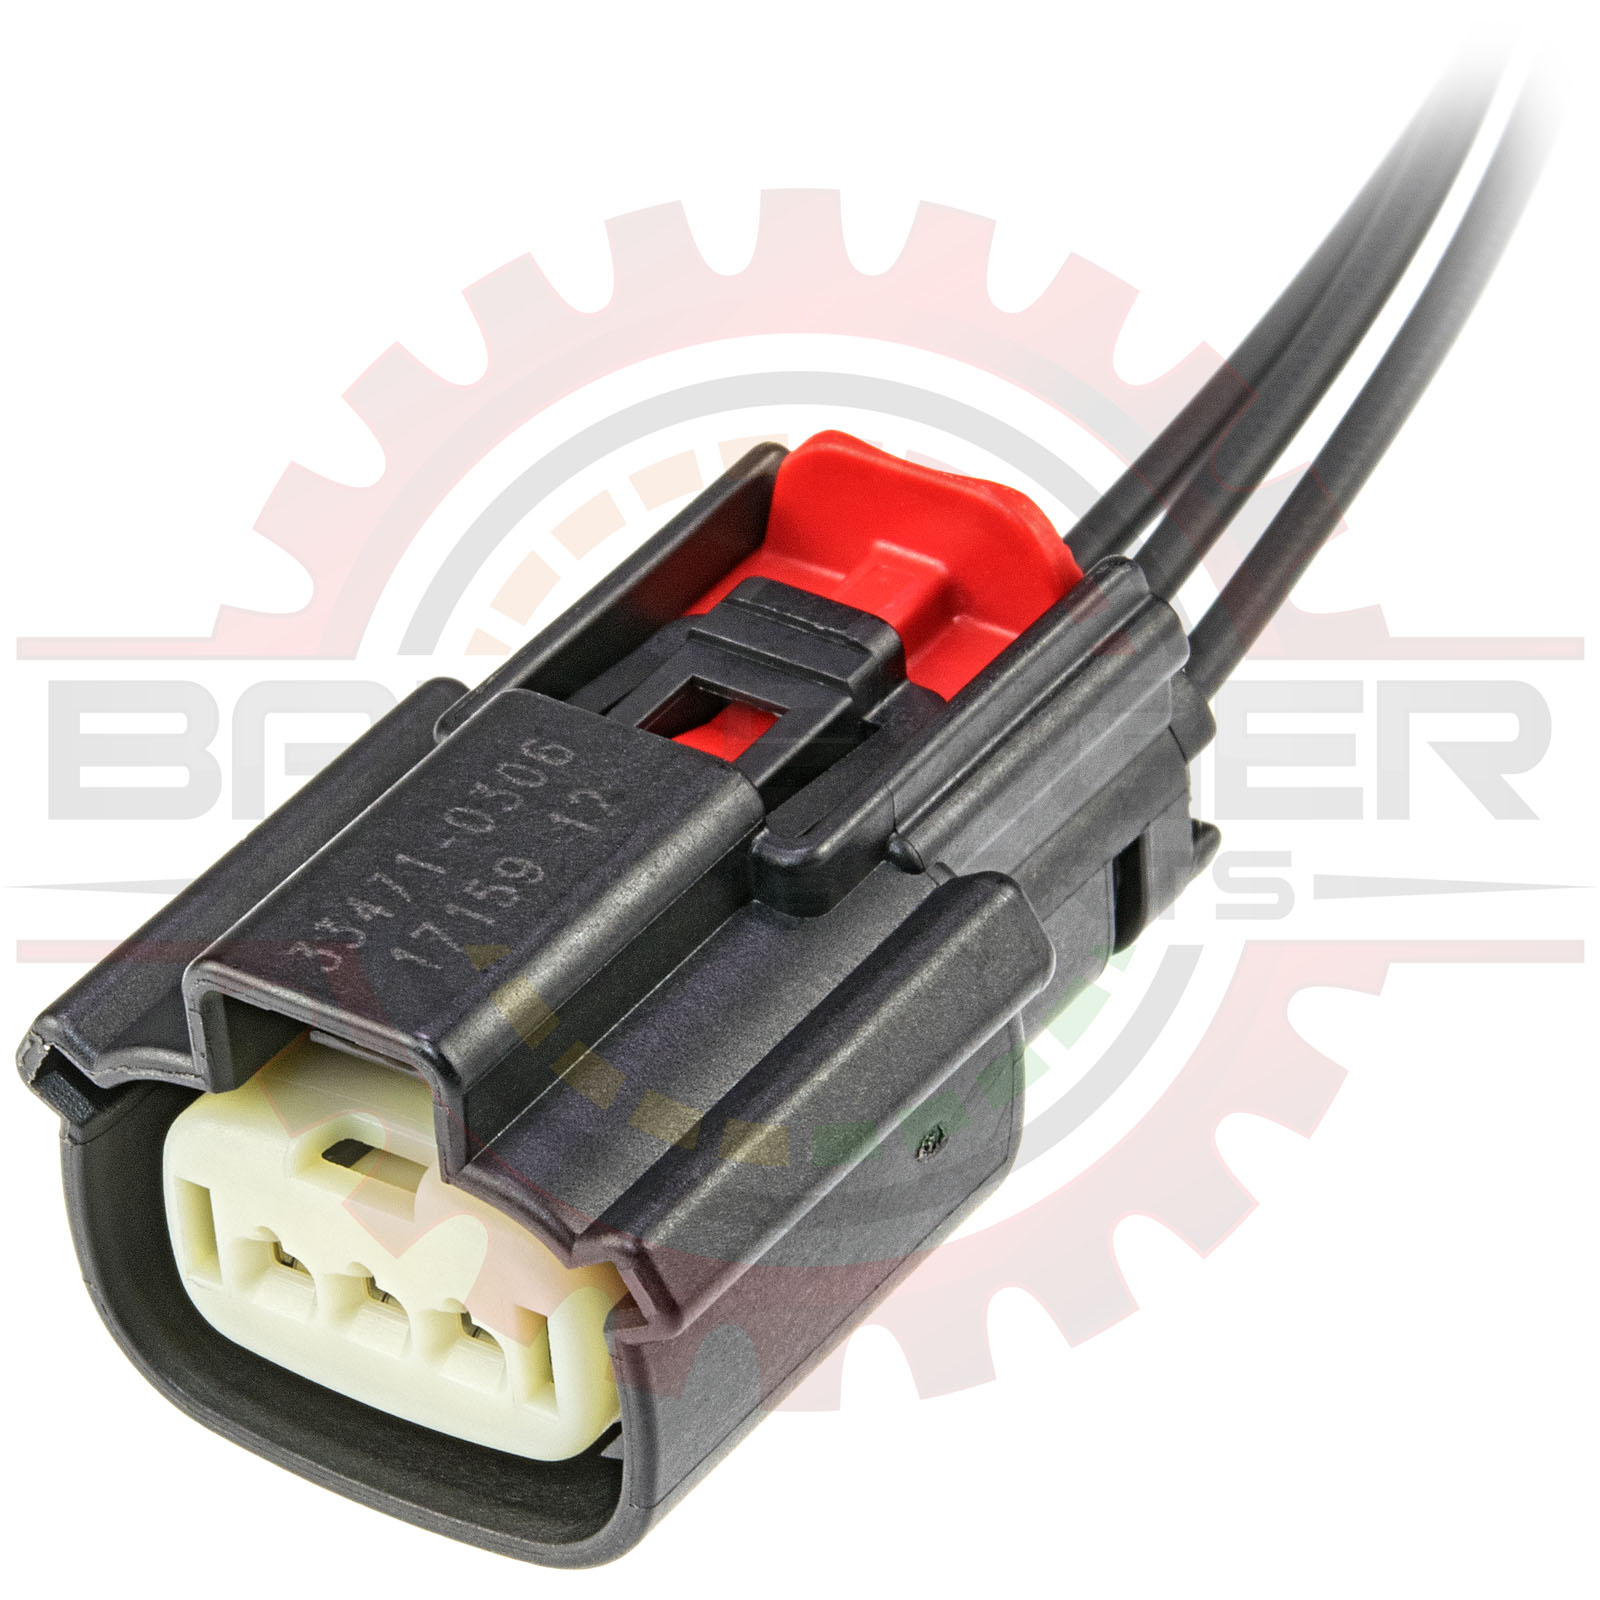 ford wiring connectors home shop connectors harnesses ford epc 3 way ford classic ford wiring connectors epc 3 way ford